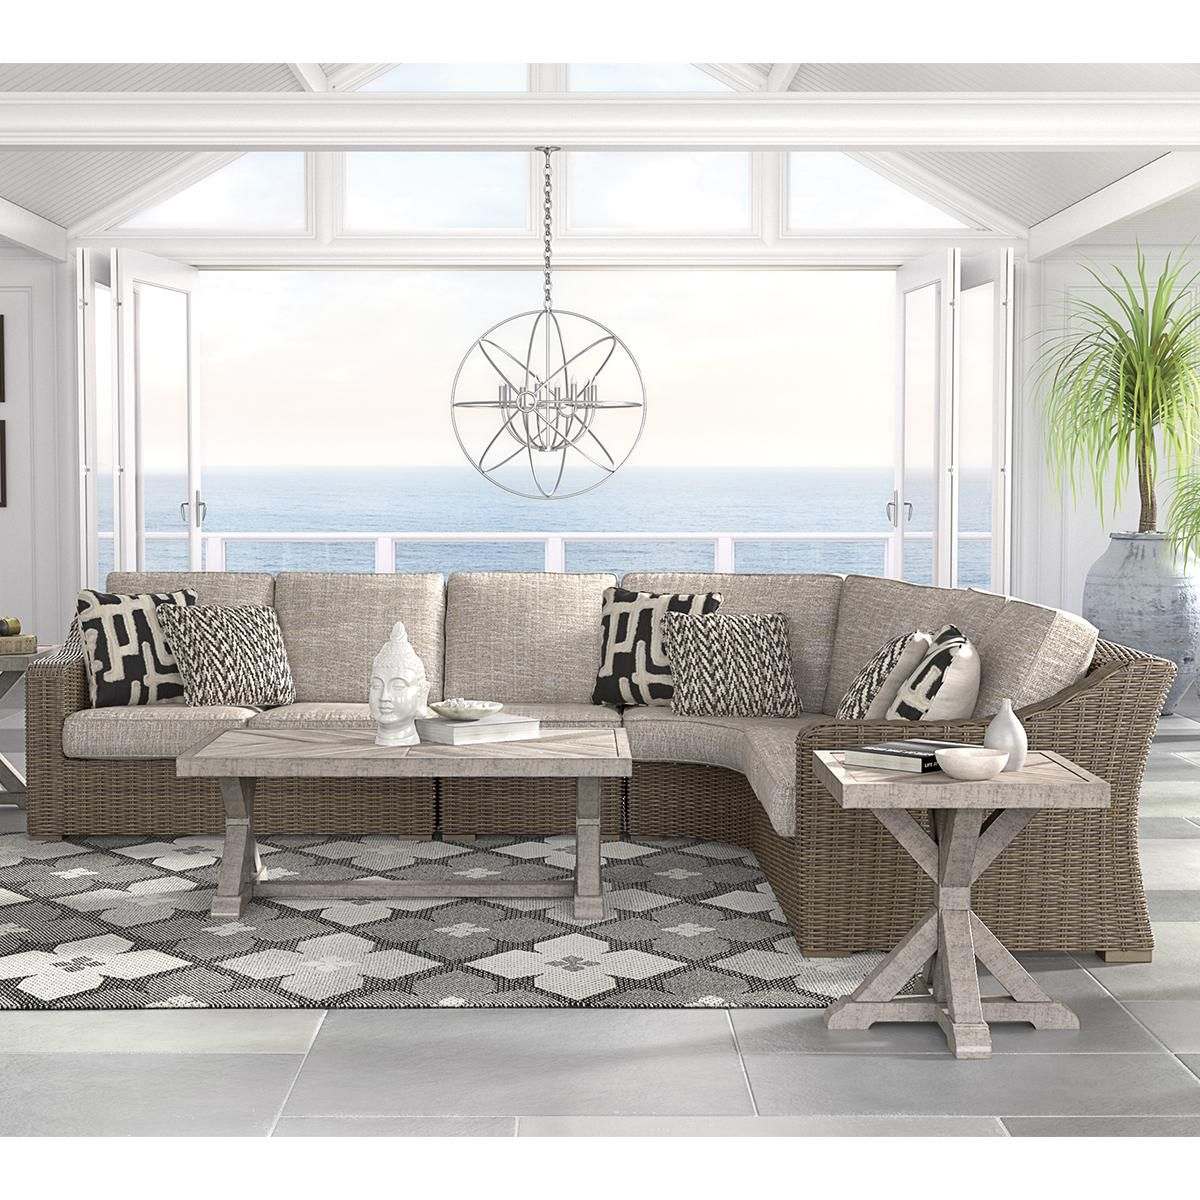 Product Main Image 0 | Outdoor seating set, Furniture ... on Beachcroft Beige Outdoor Living Room Set  id=78238